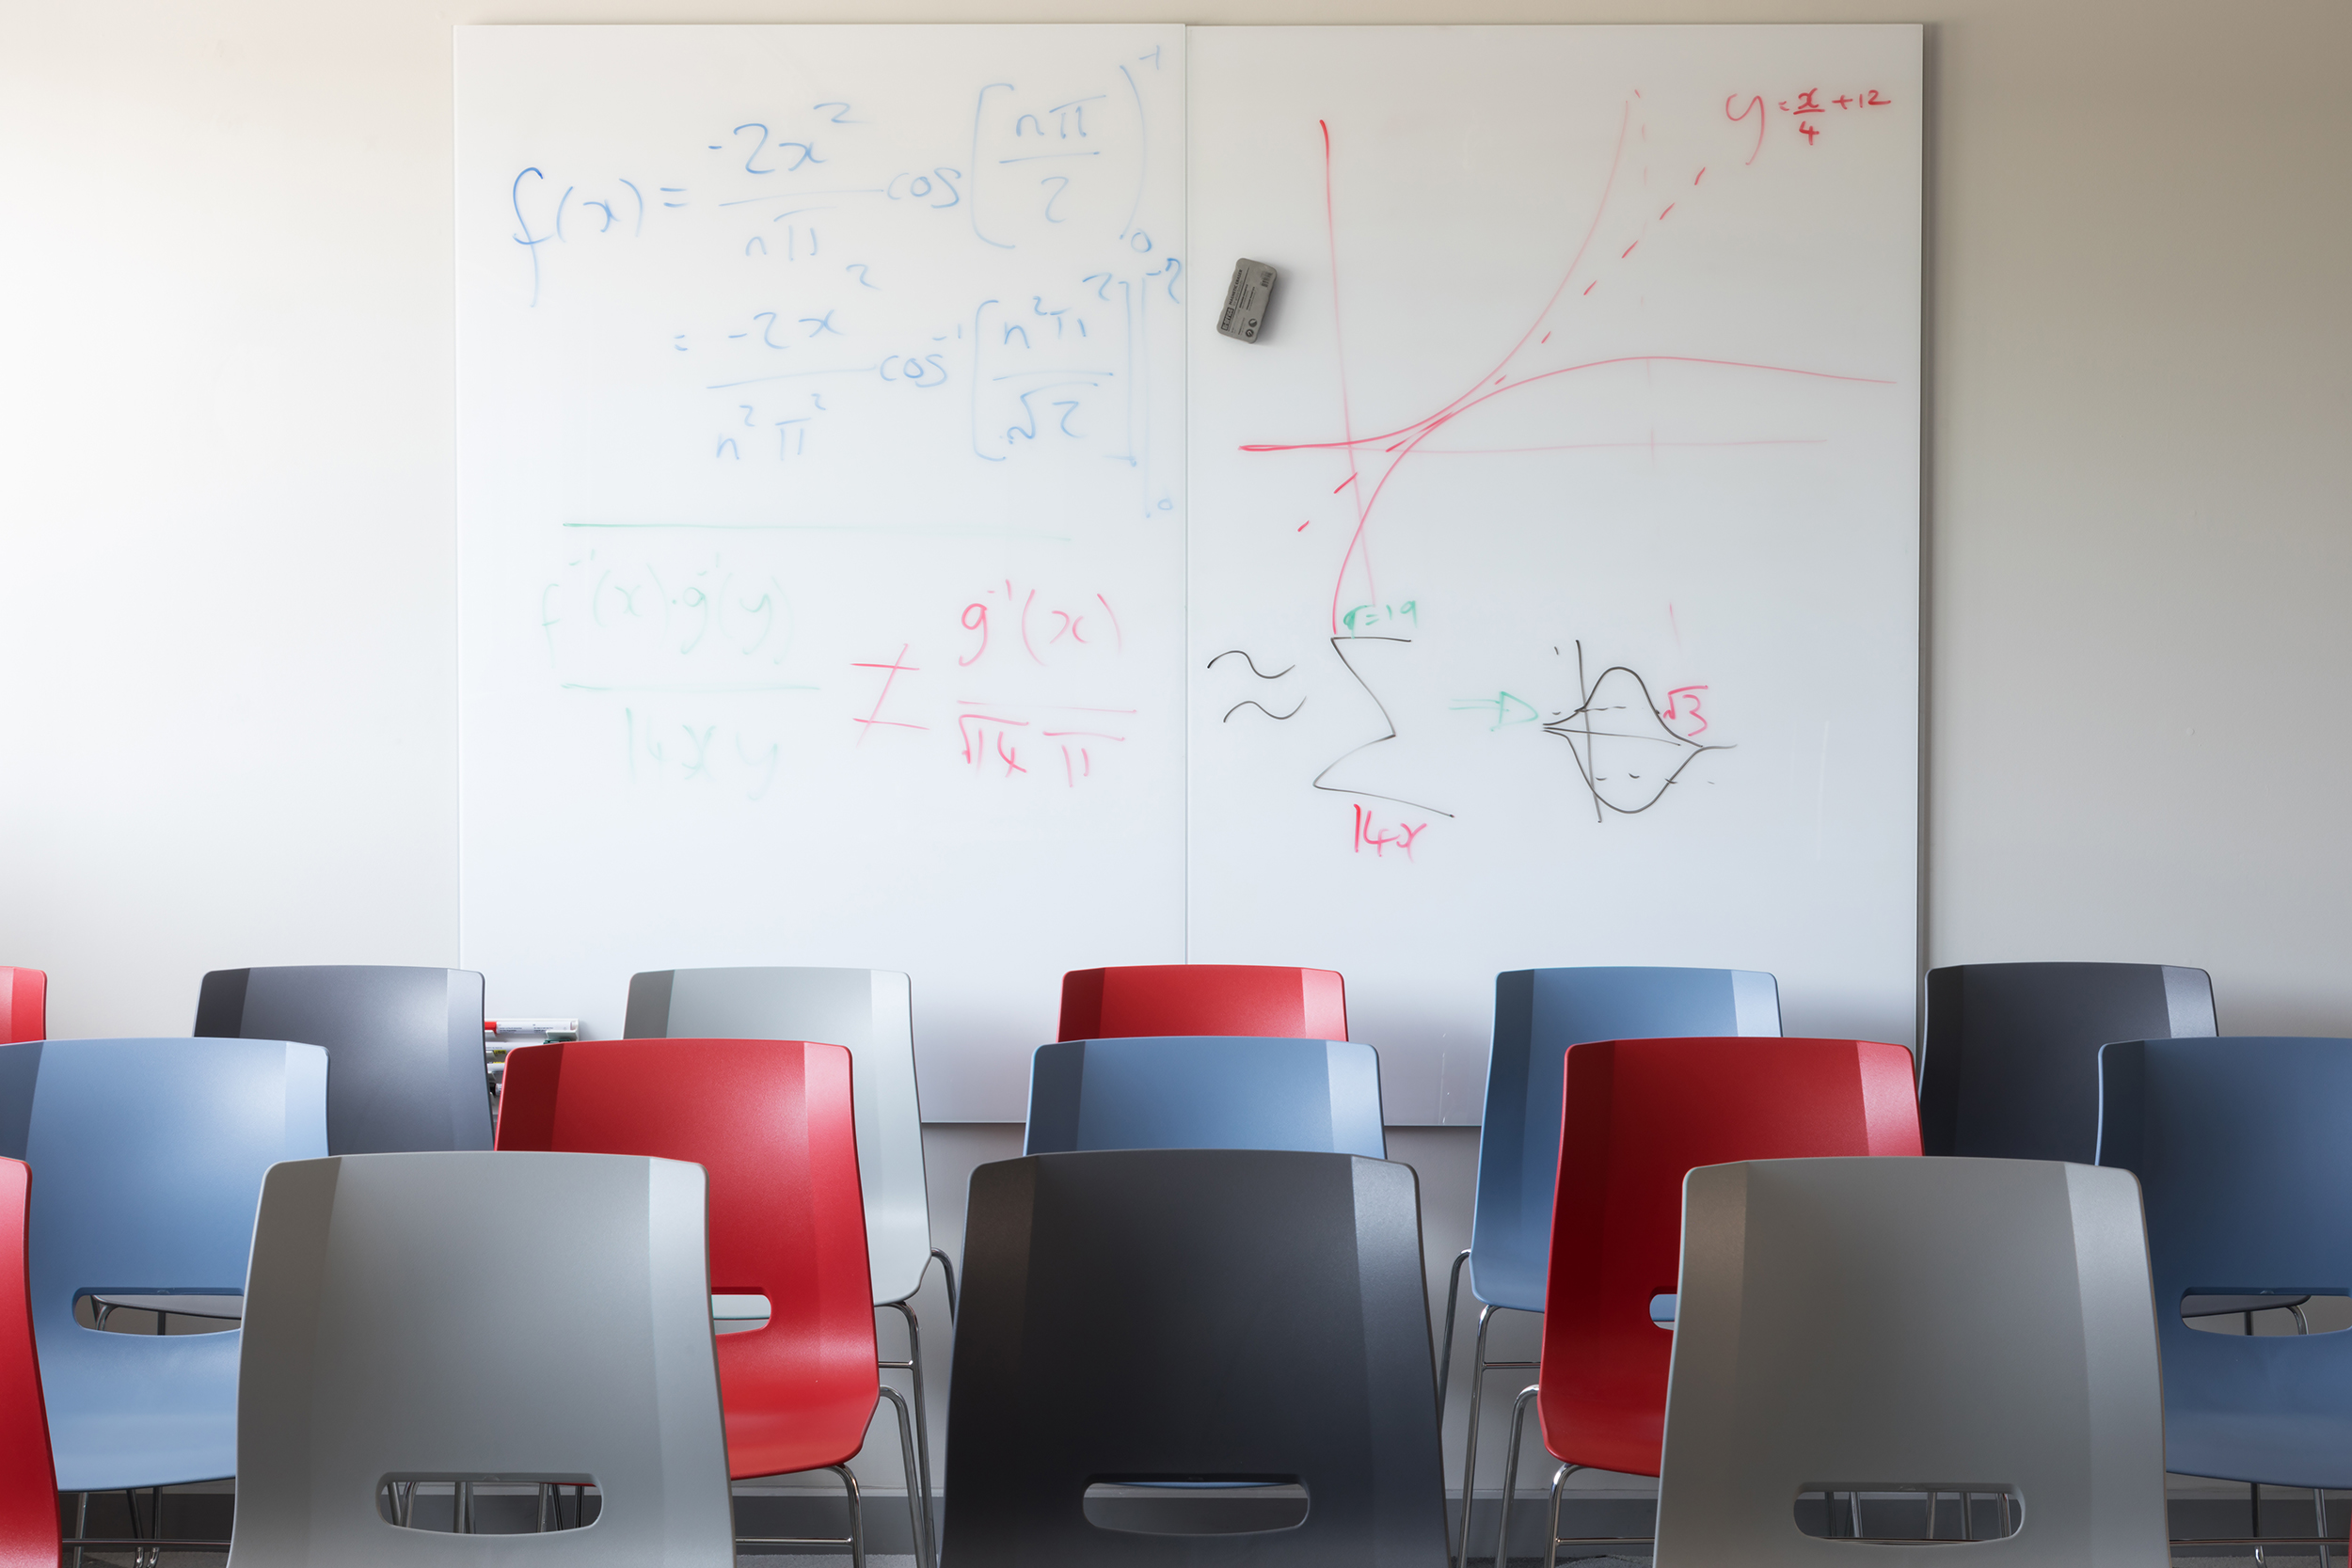 Whiteboards for those Eureka moments are a key aspect of the design. - The whiteboards allow mathematical analysis to be spread out over many metres. This aspect of the work is top secret so sadly we can't share photos of them.